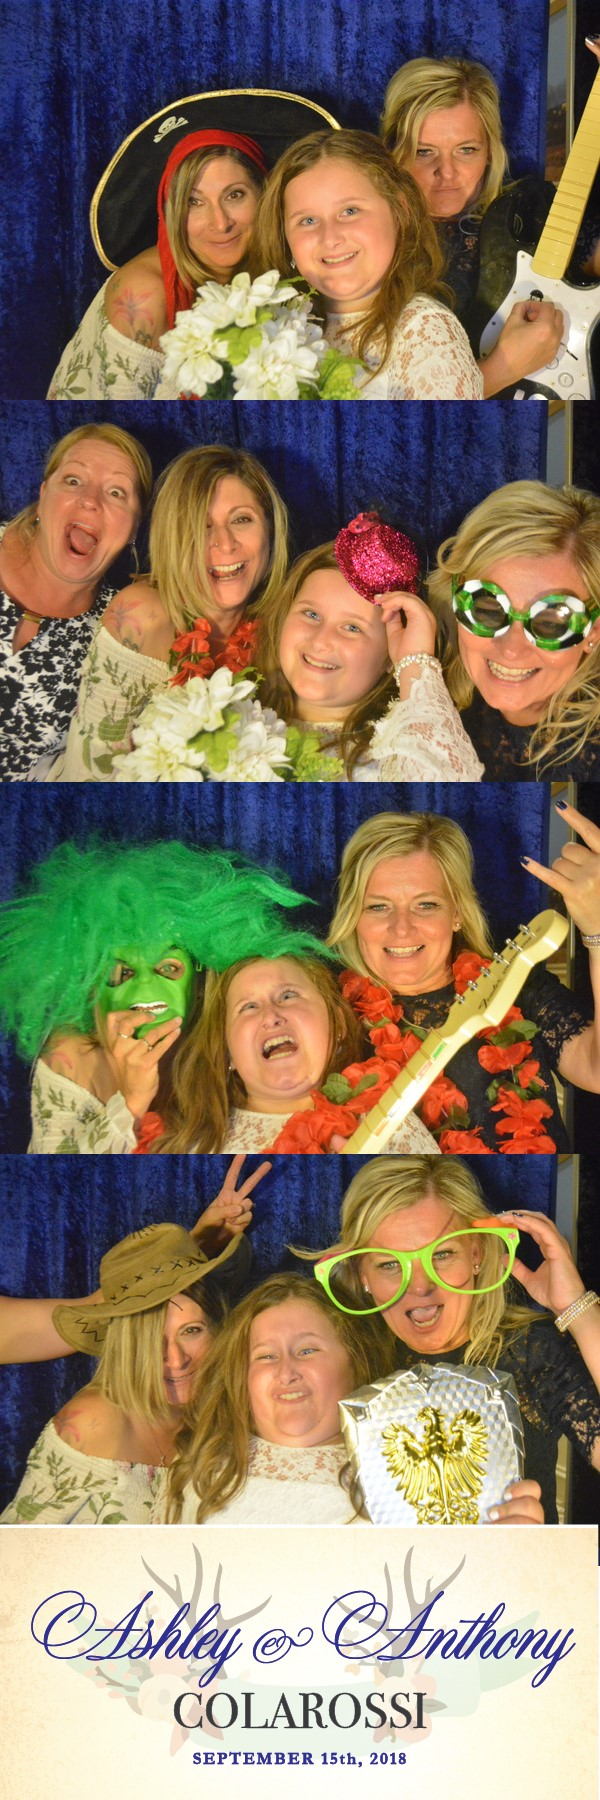 Fogolar Furlan Club of Windsor Photo Booth and Photography @villabelmara @wunderbooth